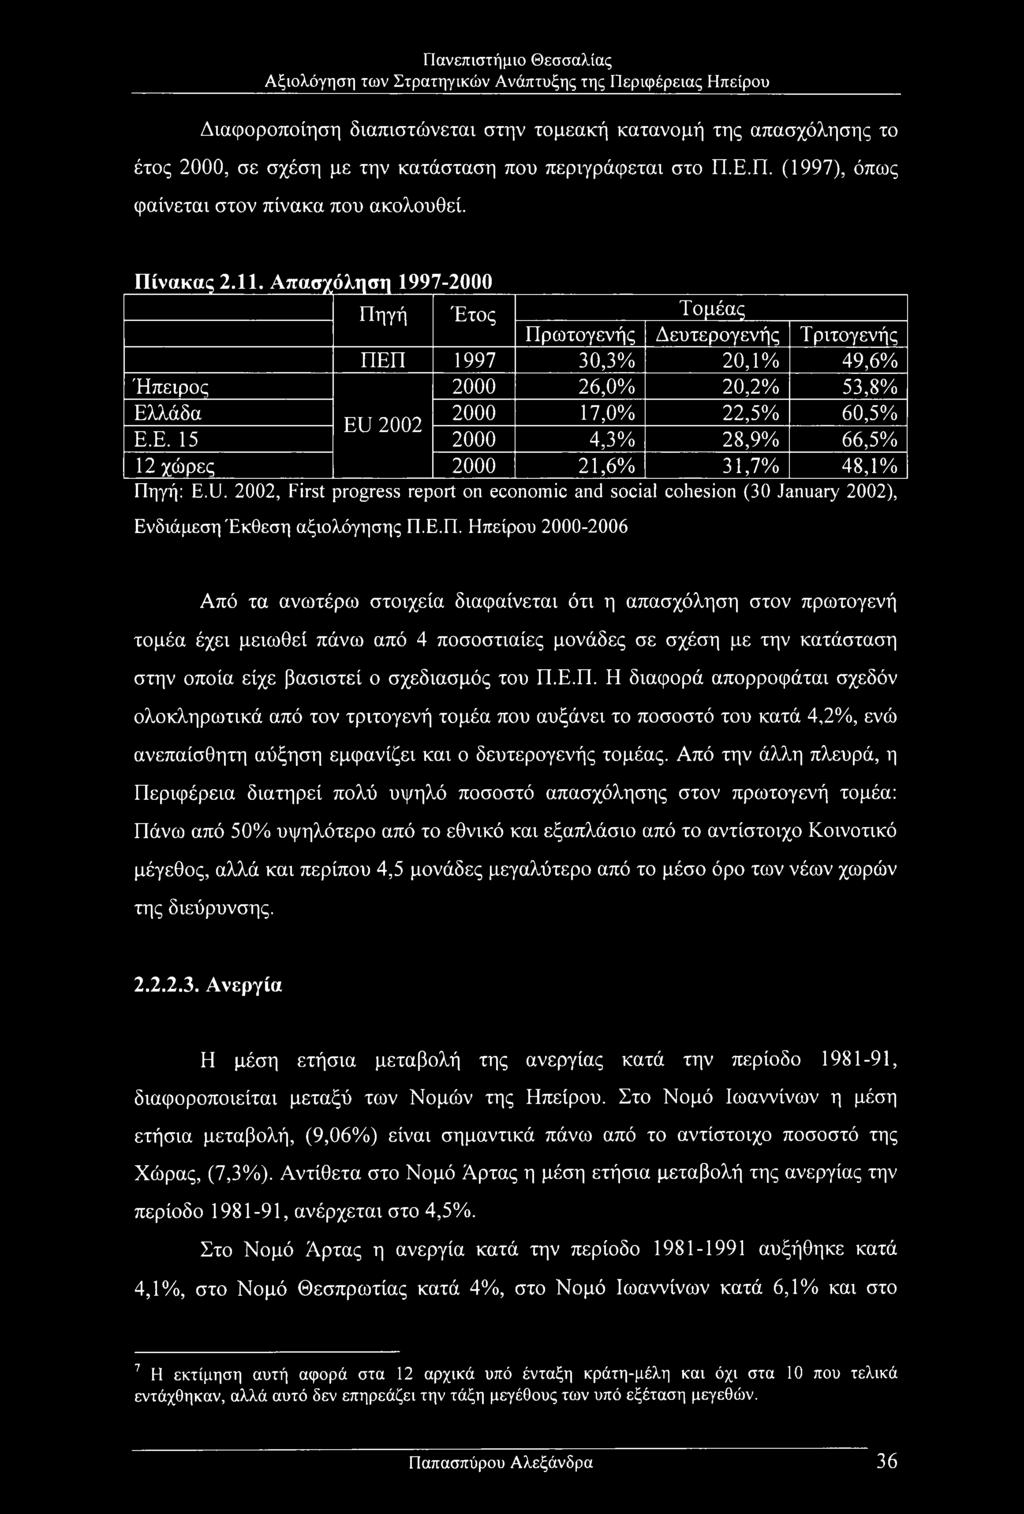 U. 2002, First progress report on economic and social cohesion (30 January 2002), Ενδιάμεση Έκθεση αξιολόγησης Π.